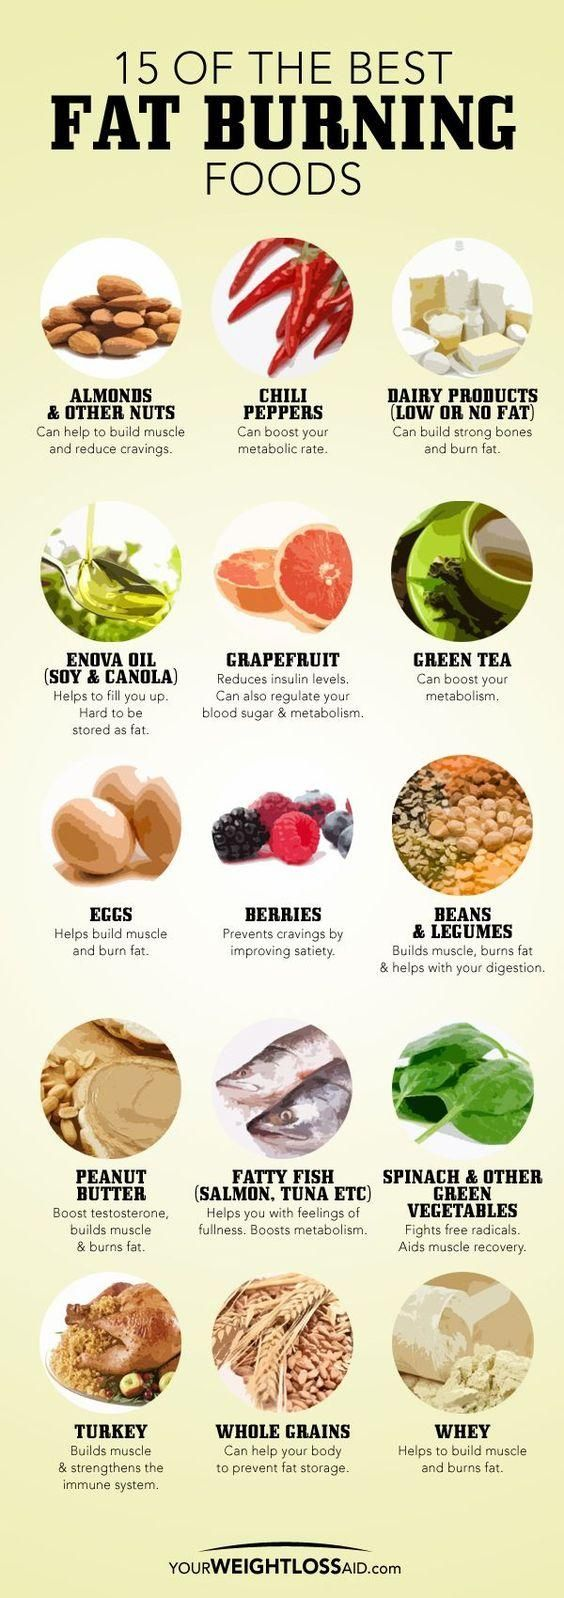 Best Fitness Foods to Help You Get in Shape Faster in 2 weeks http://checkhere.info/GetInShapeIn2Weeks